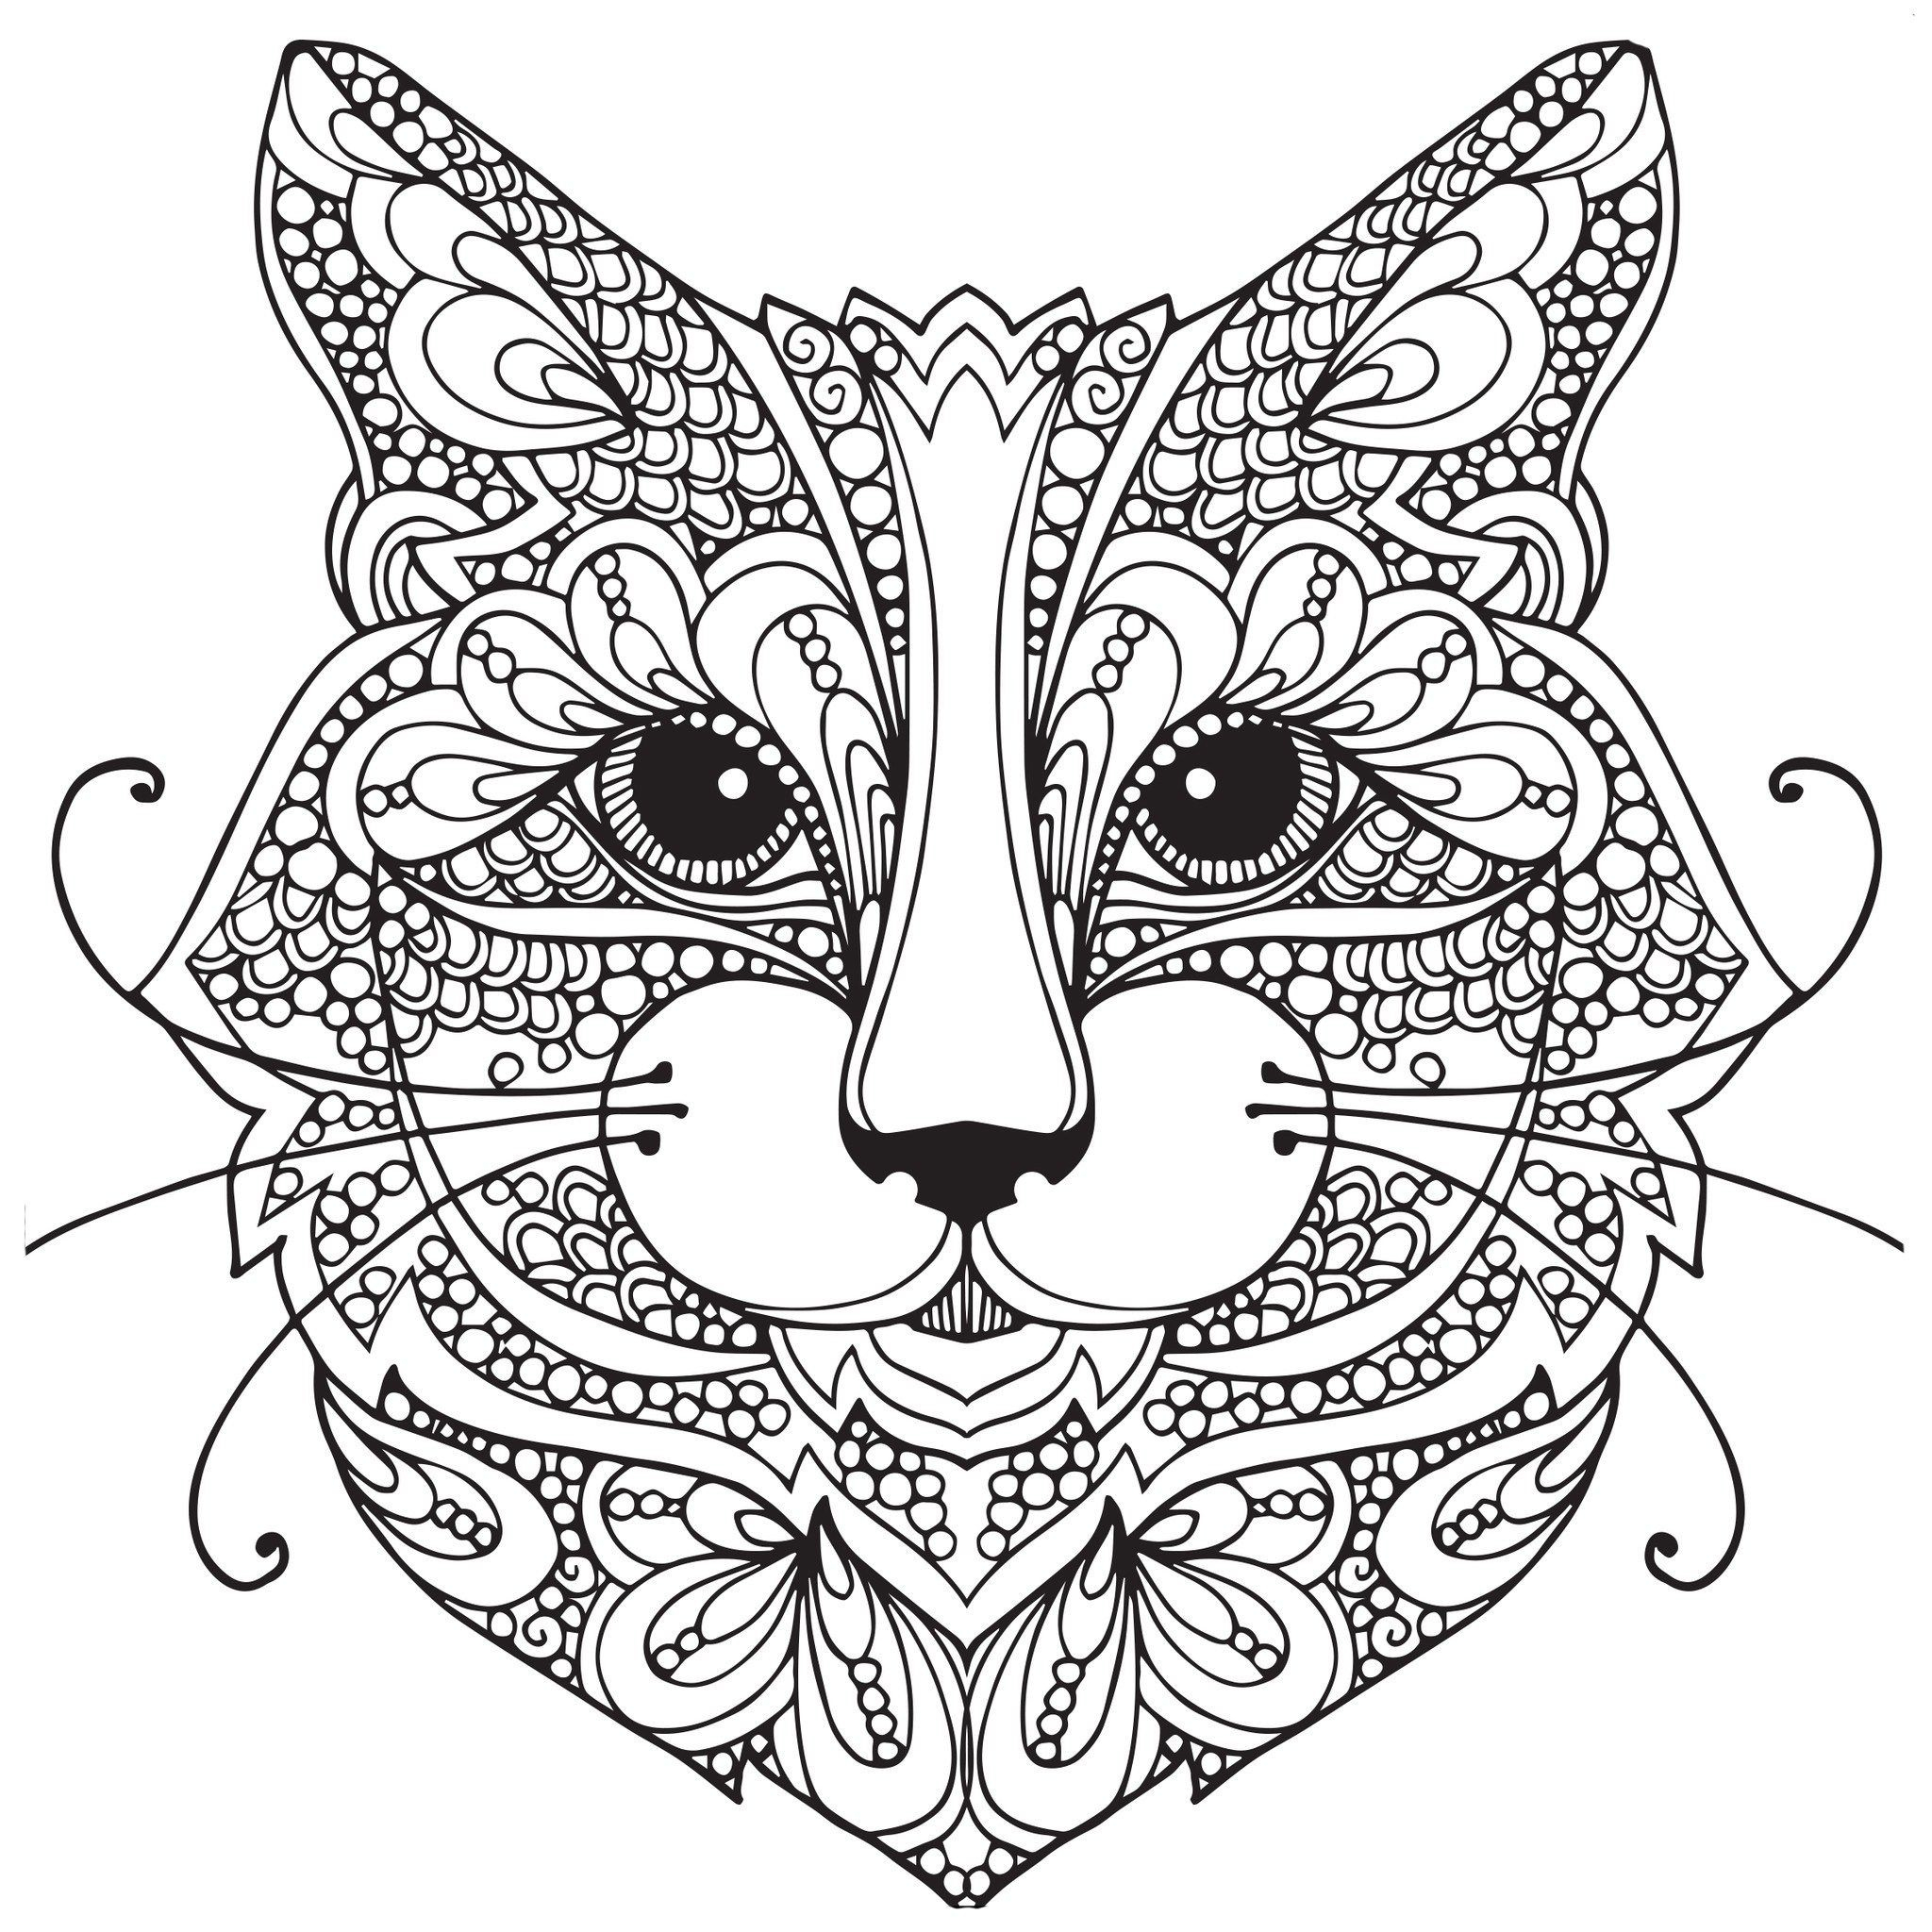 Chiwawa Coloring Pages  Download 2r - To print for your project